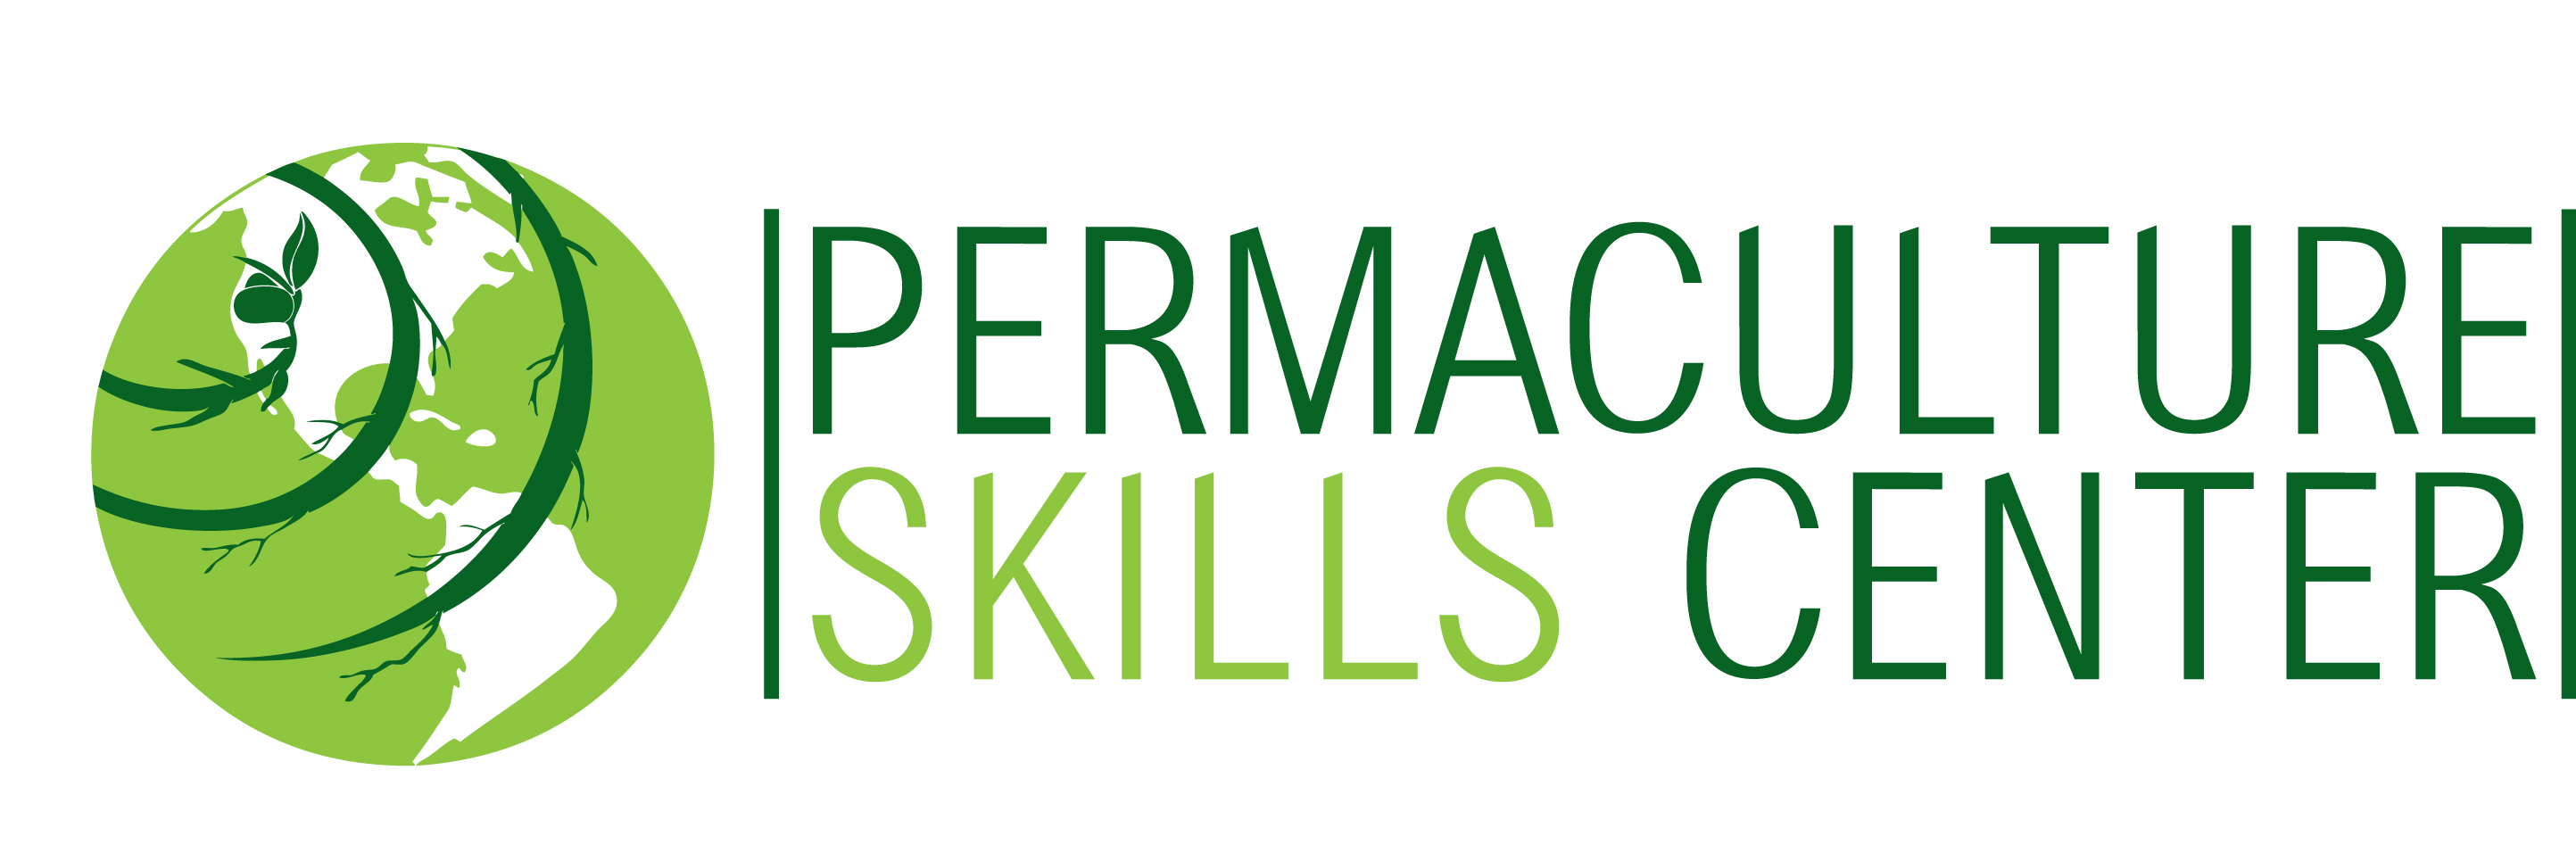 Permaculture Skills Center